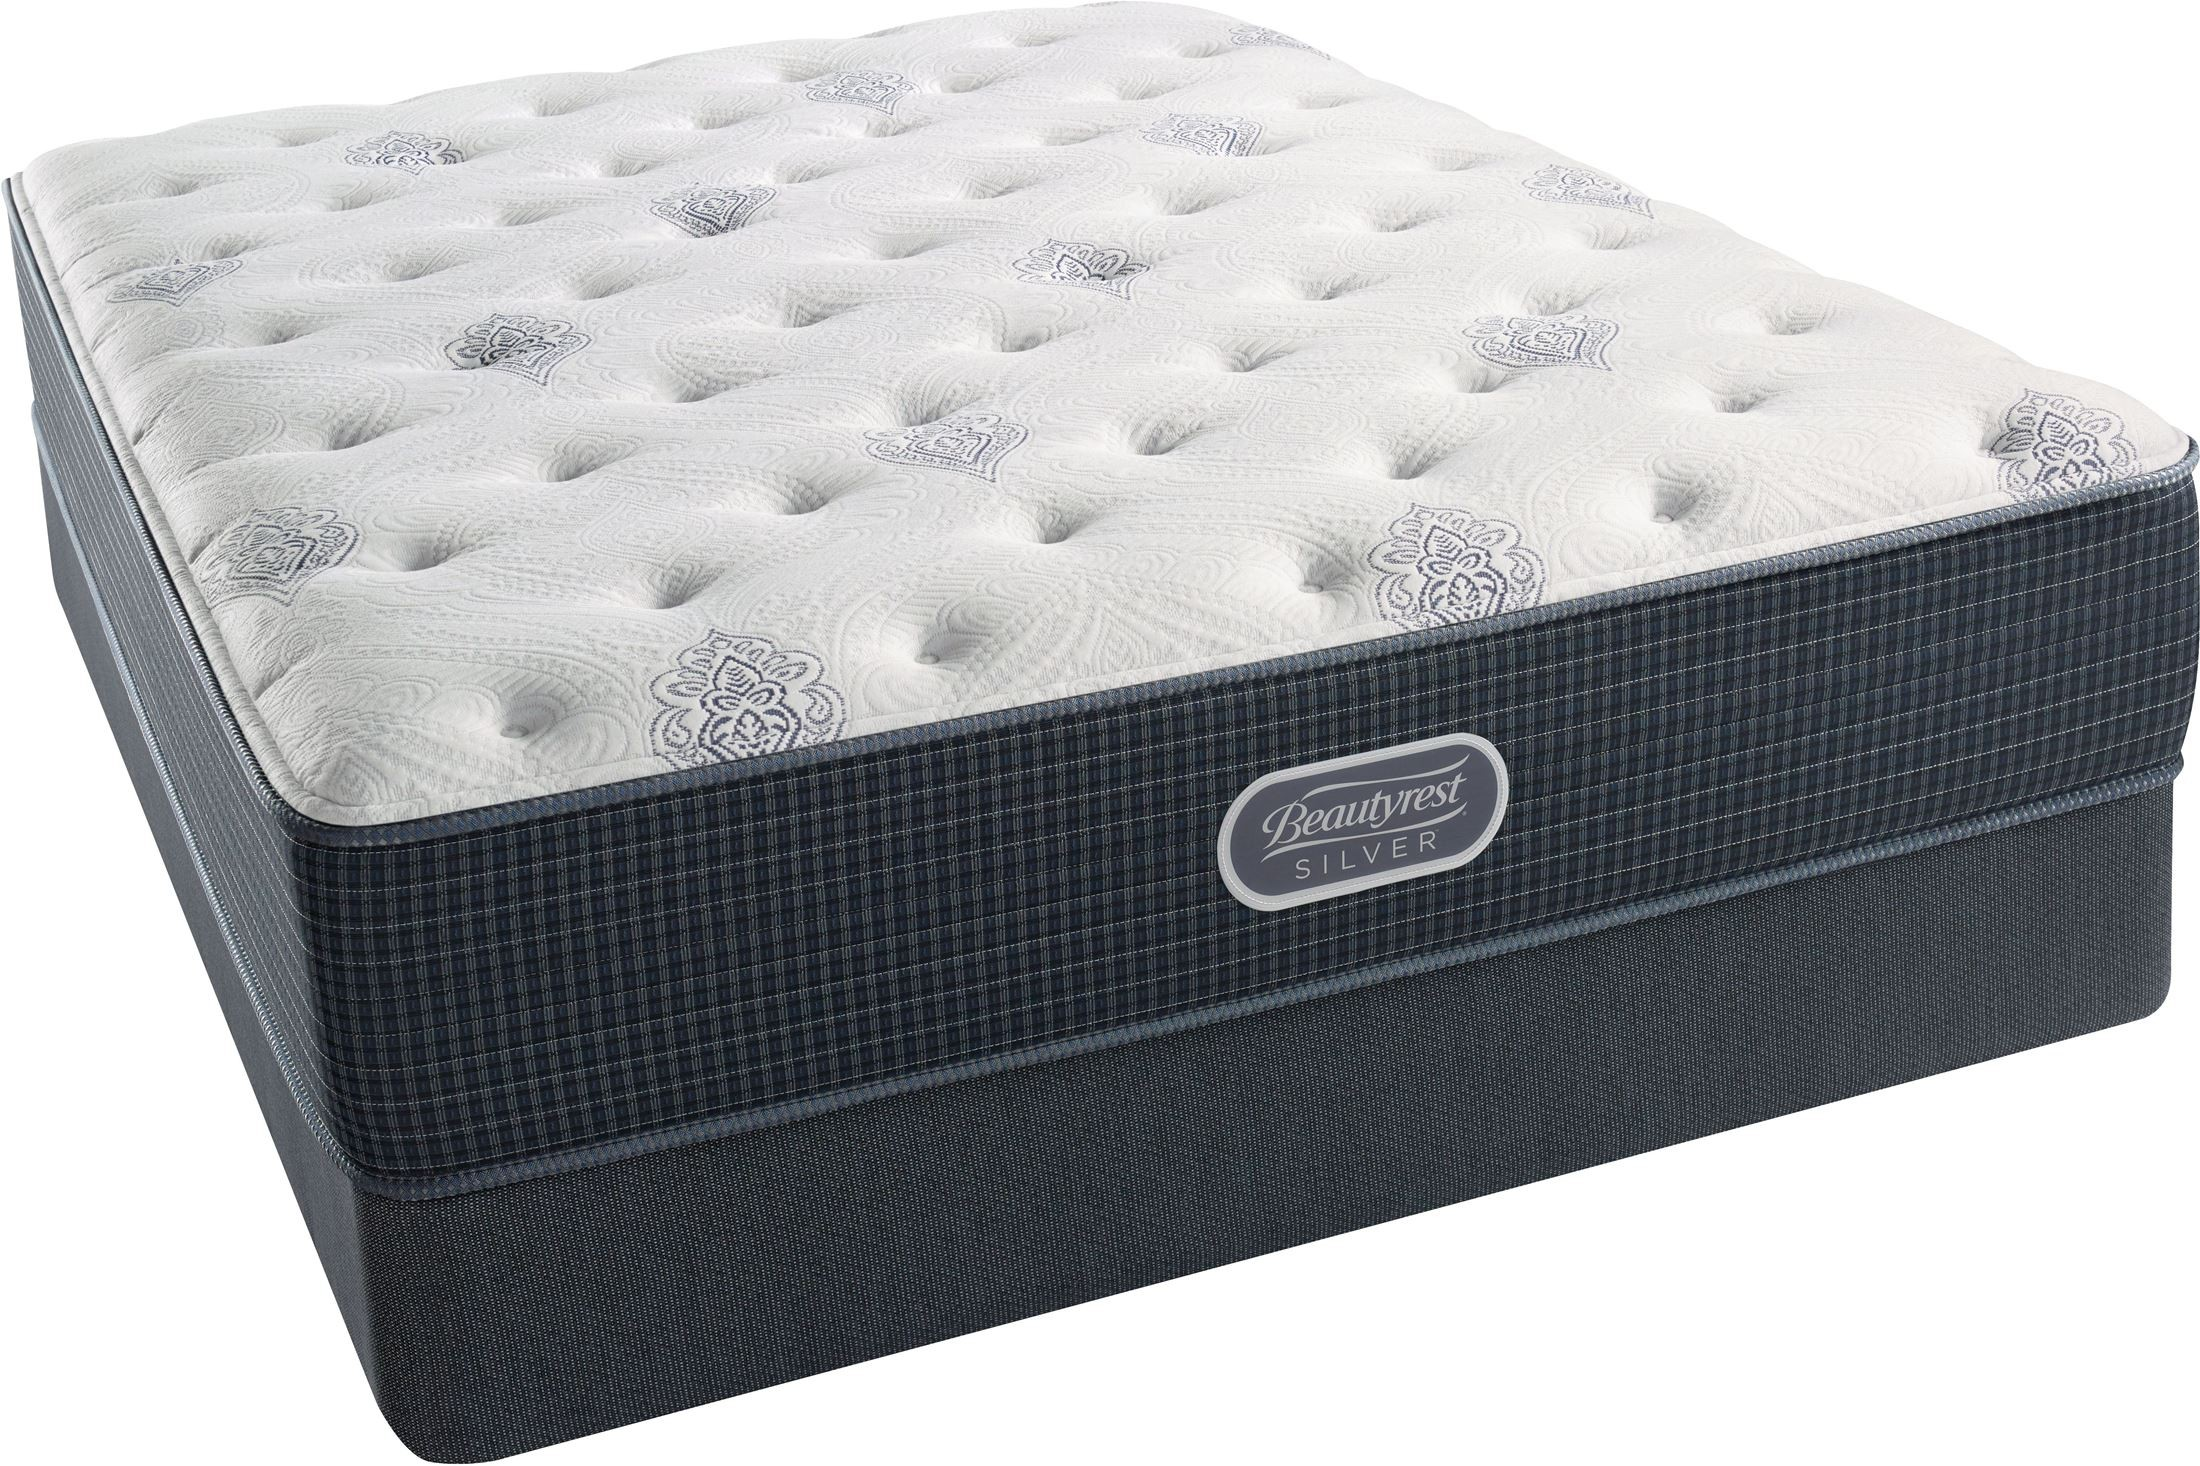 Beautyrest Recharge Silver Courtyard Blue Tight Top Plush Cal King Size Mattress From Simmons